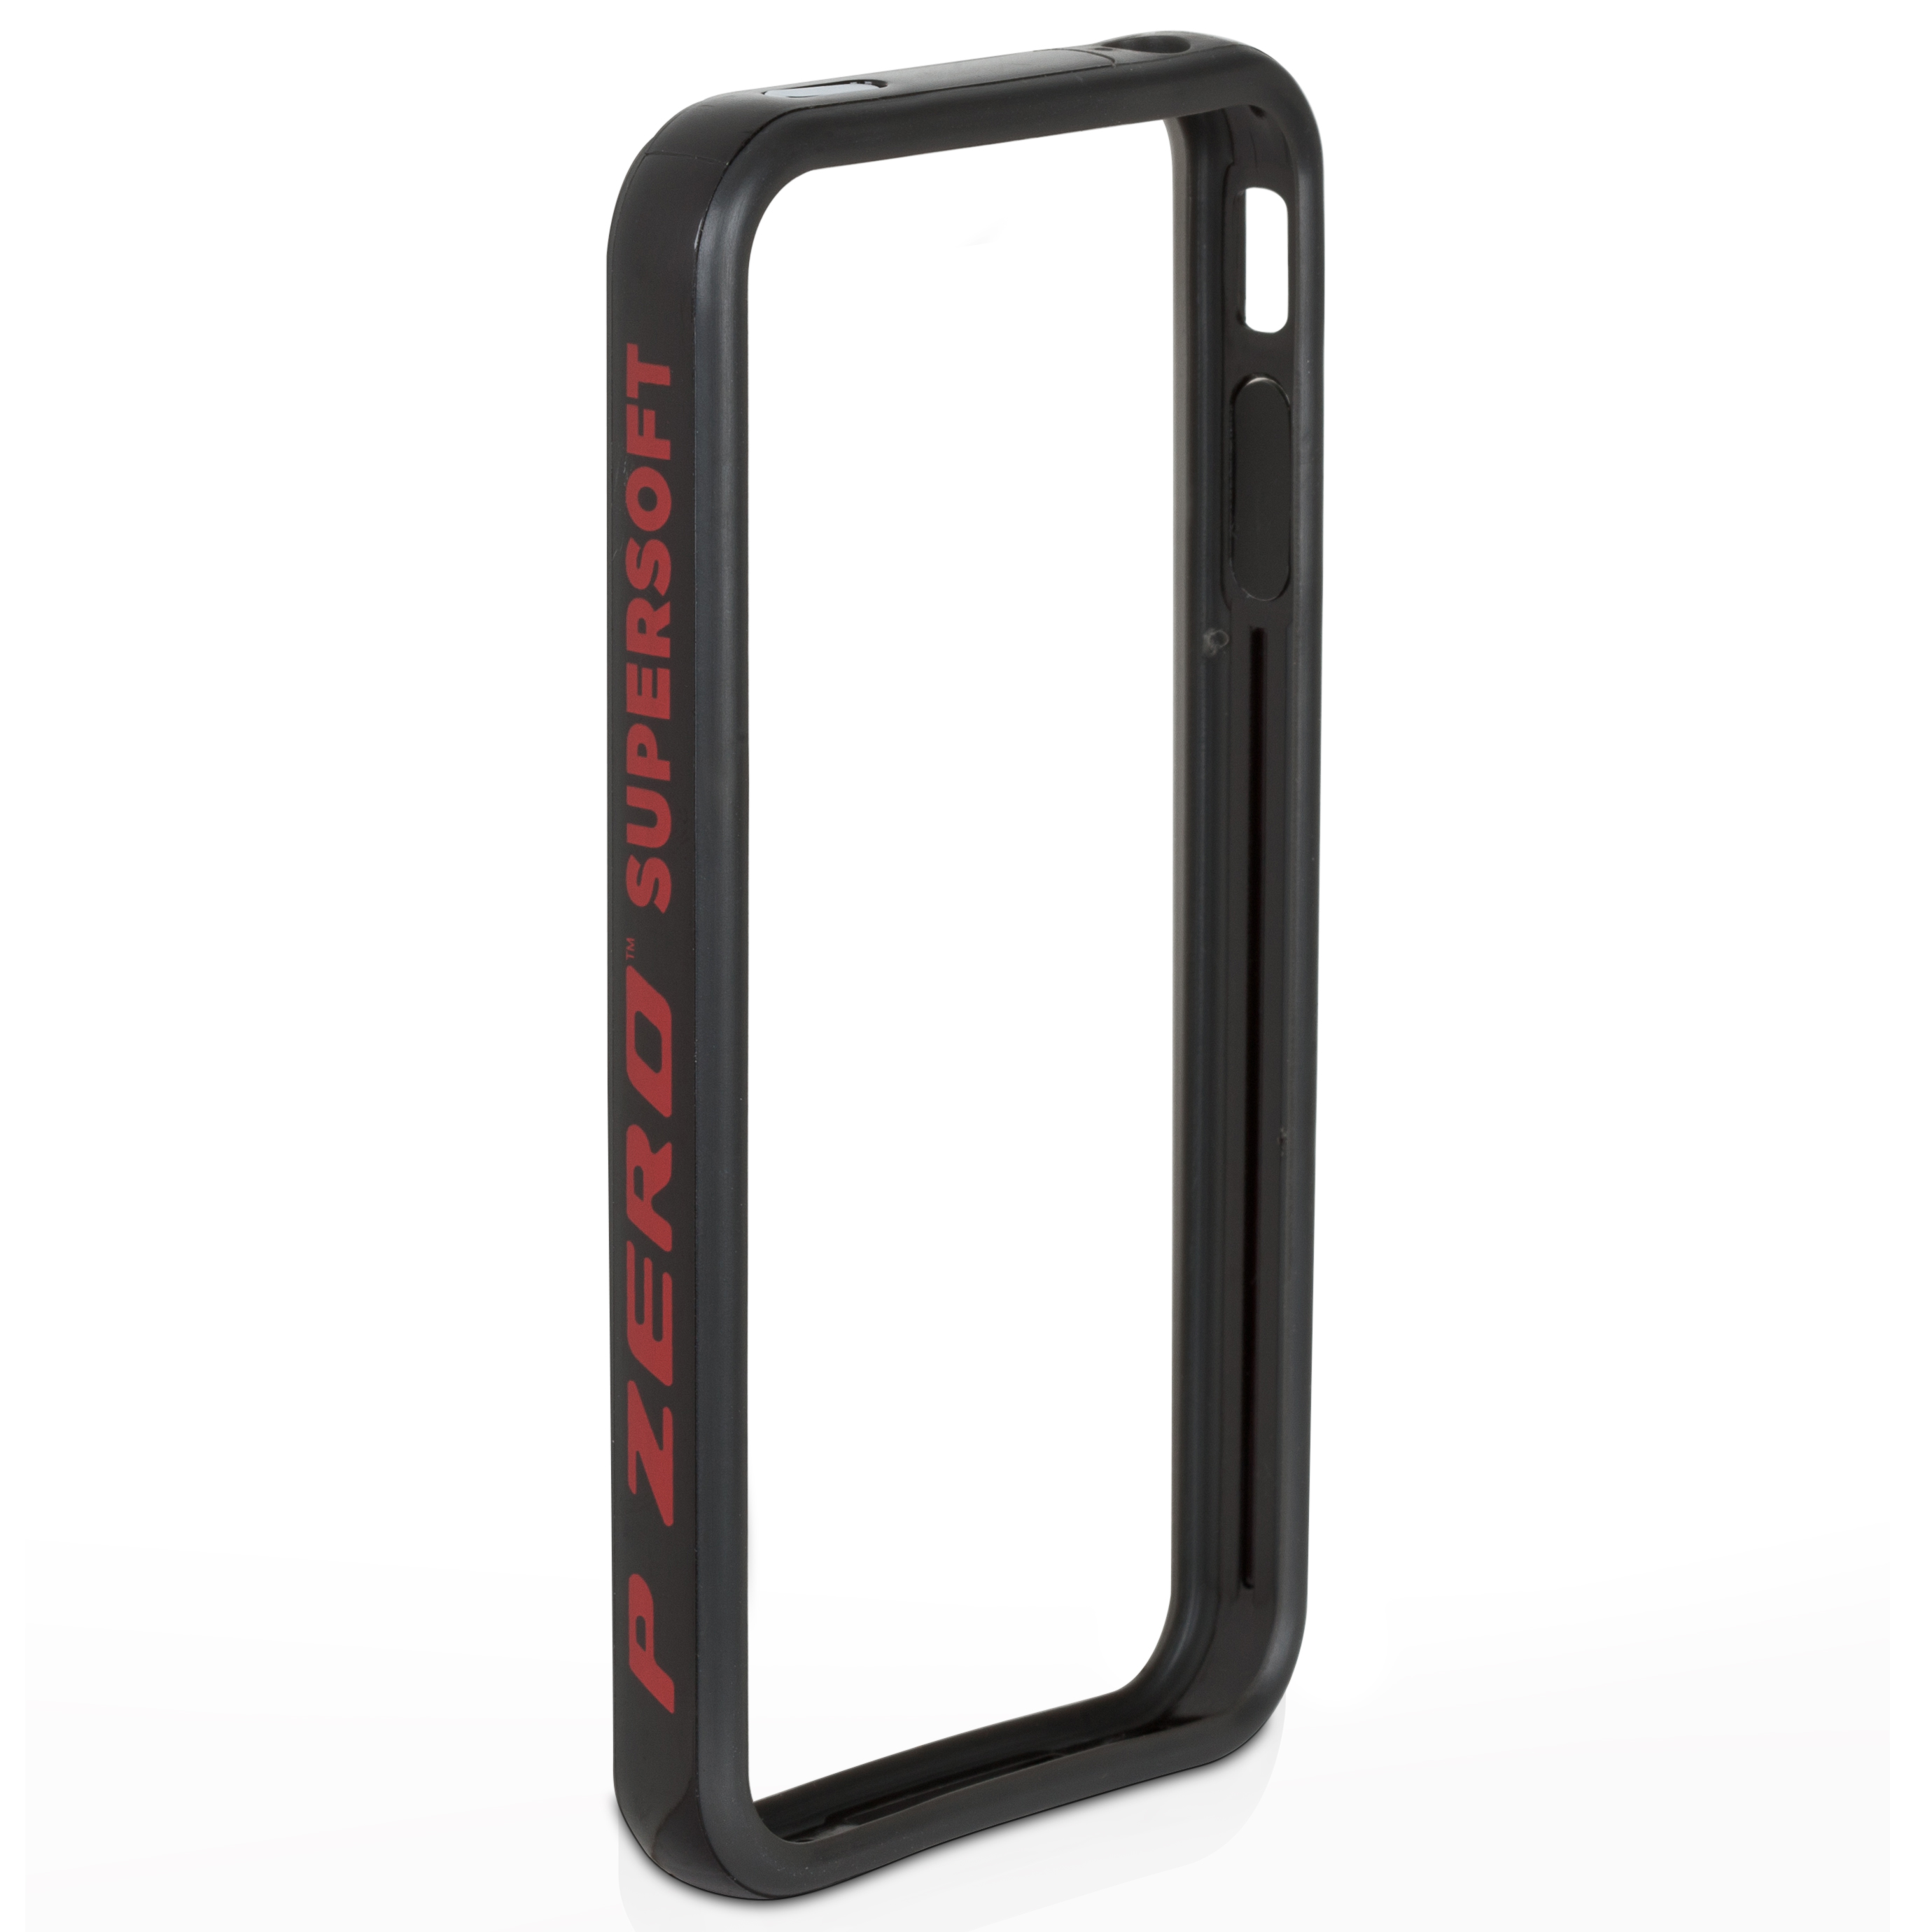 Pirelli Pzero Supersoft iPhone 4 Bumper